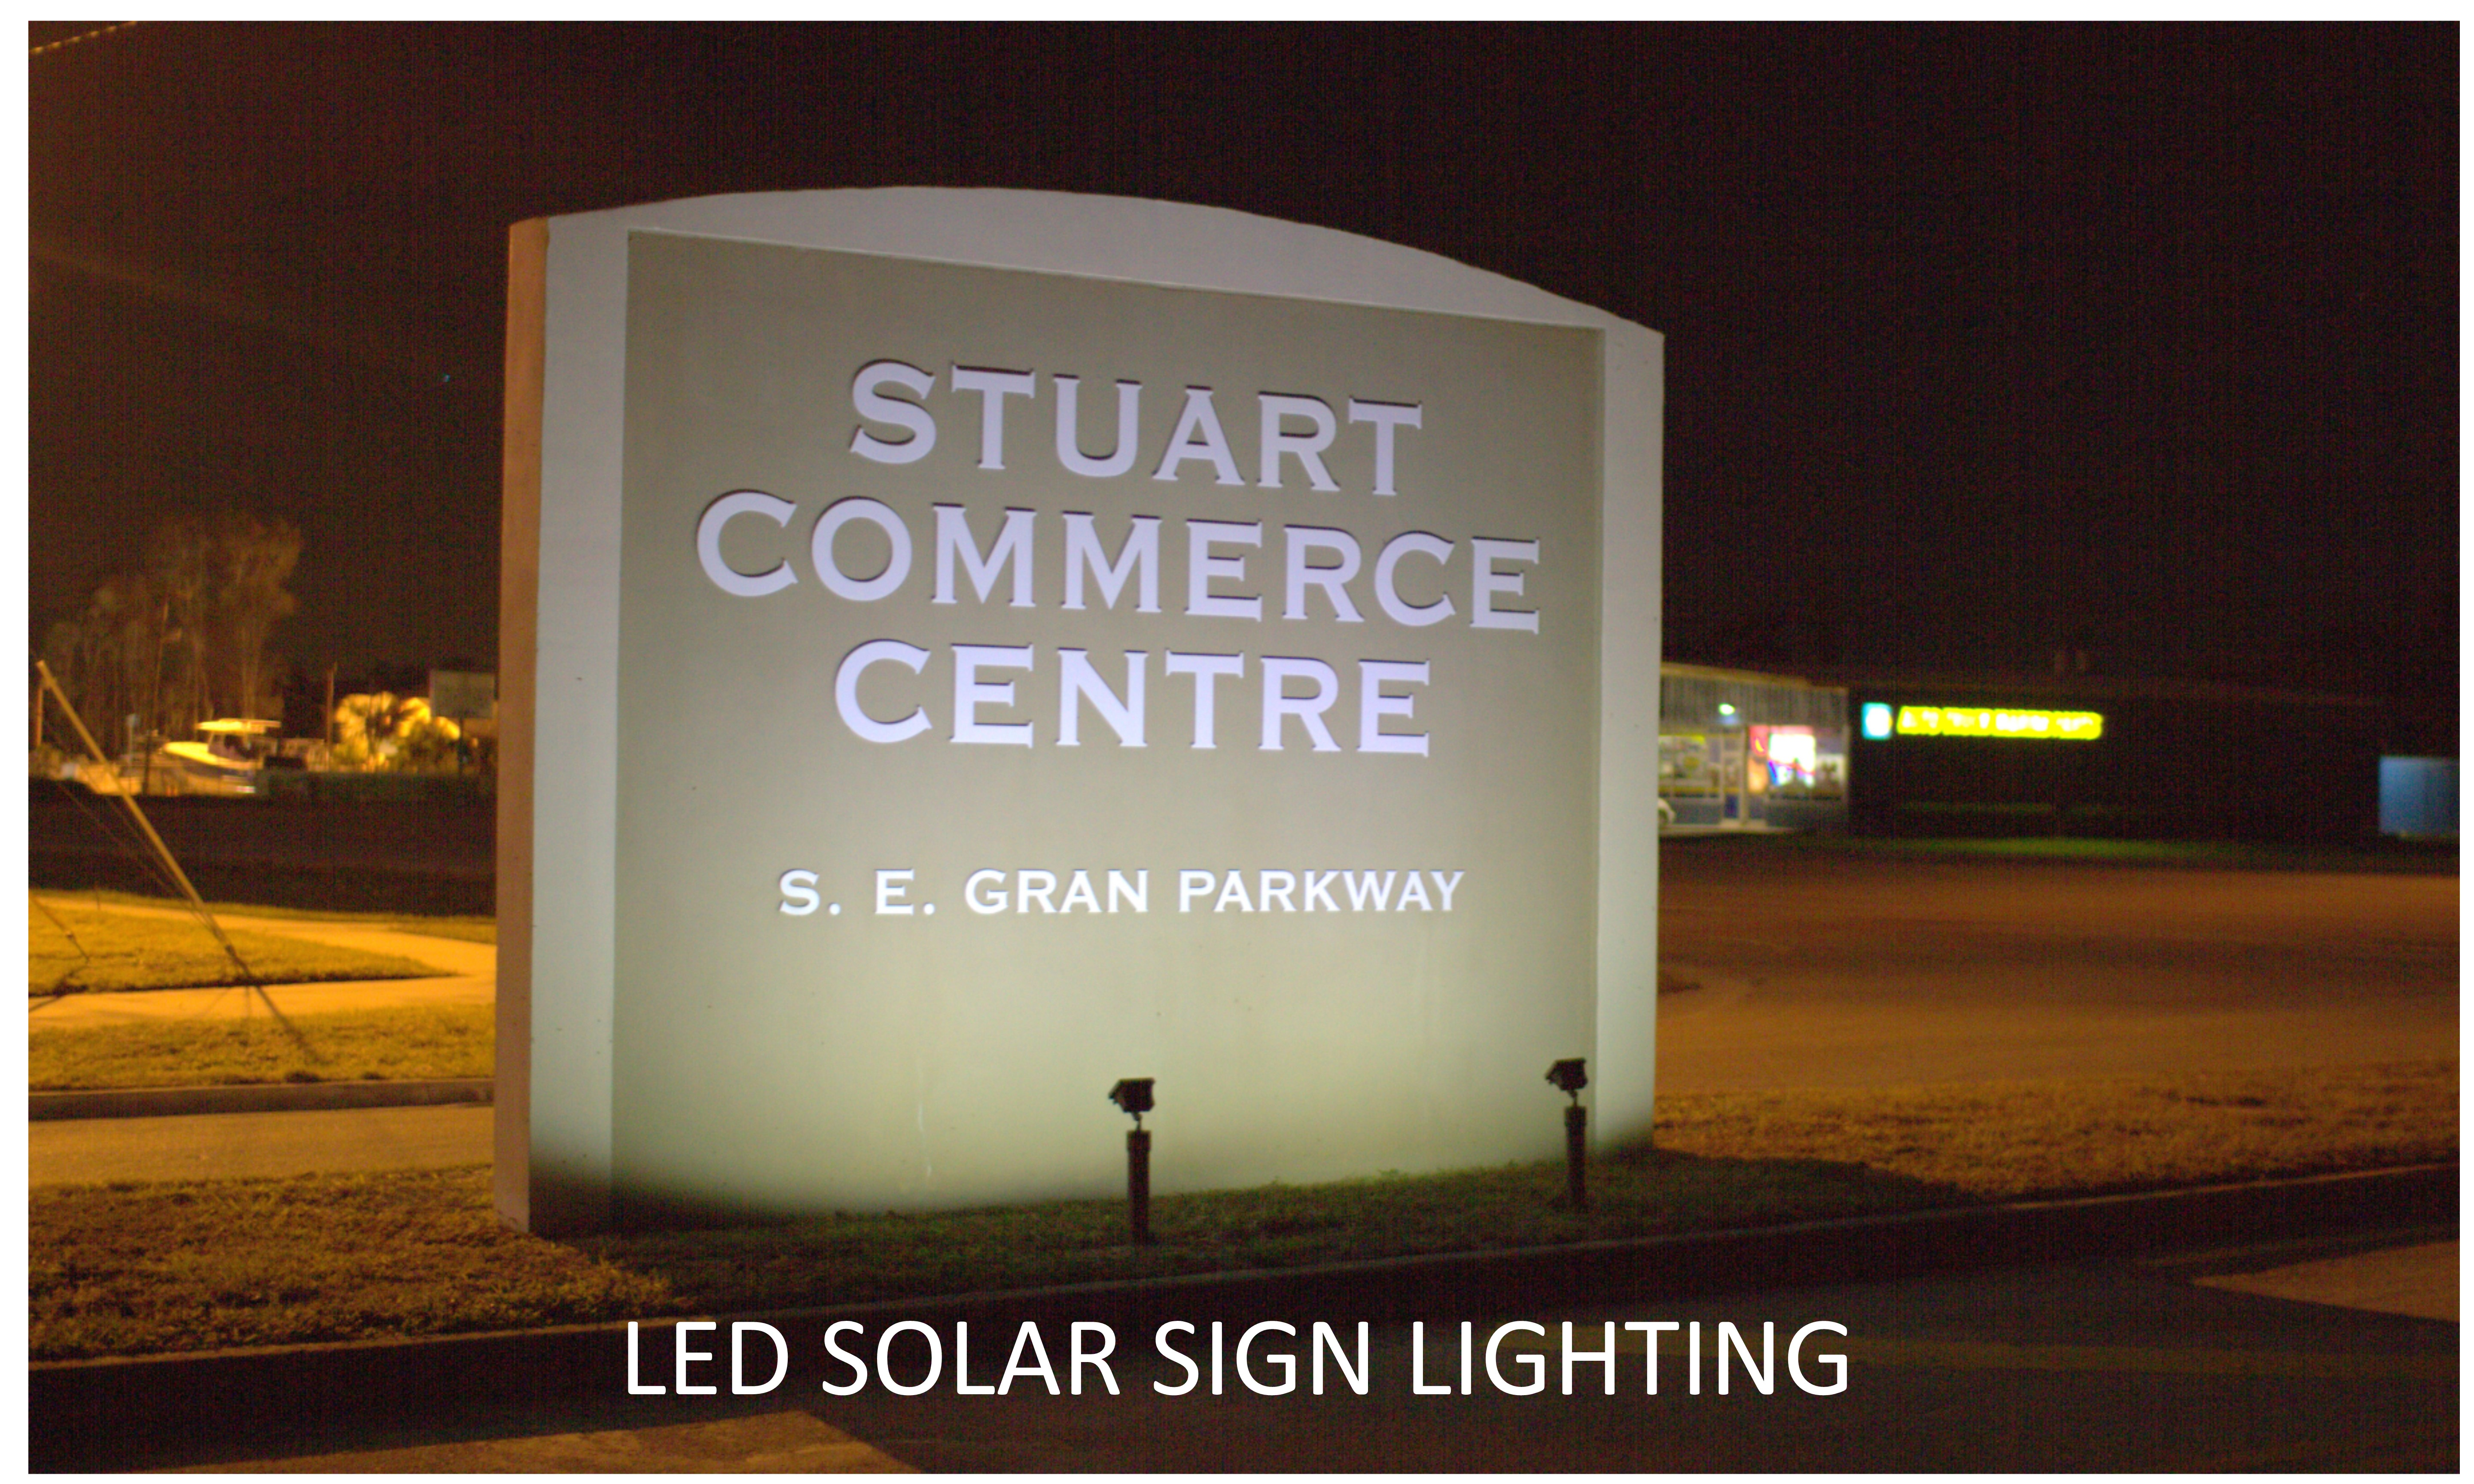 This is a photo of a sign lighted by a solar sign light.